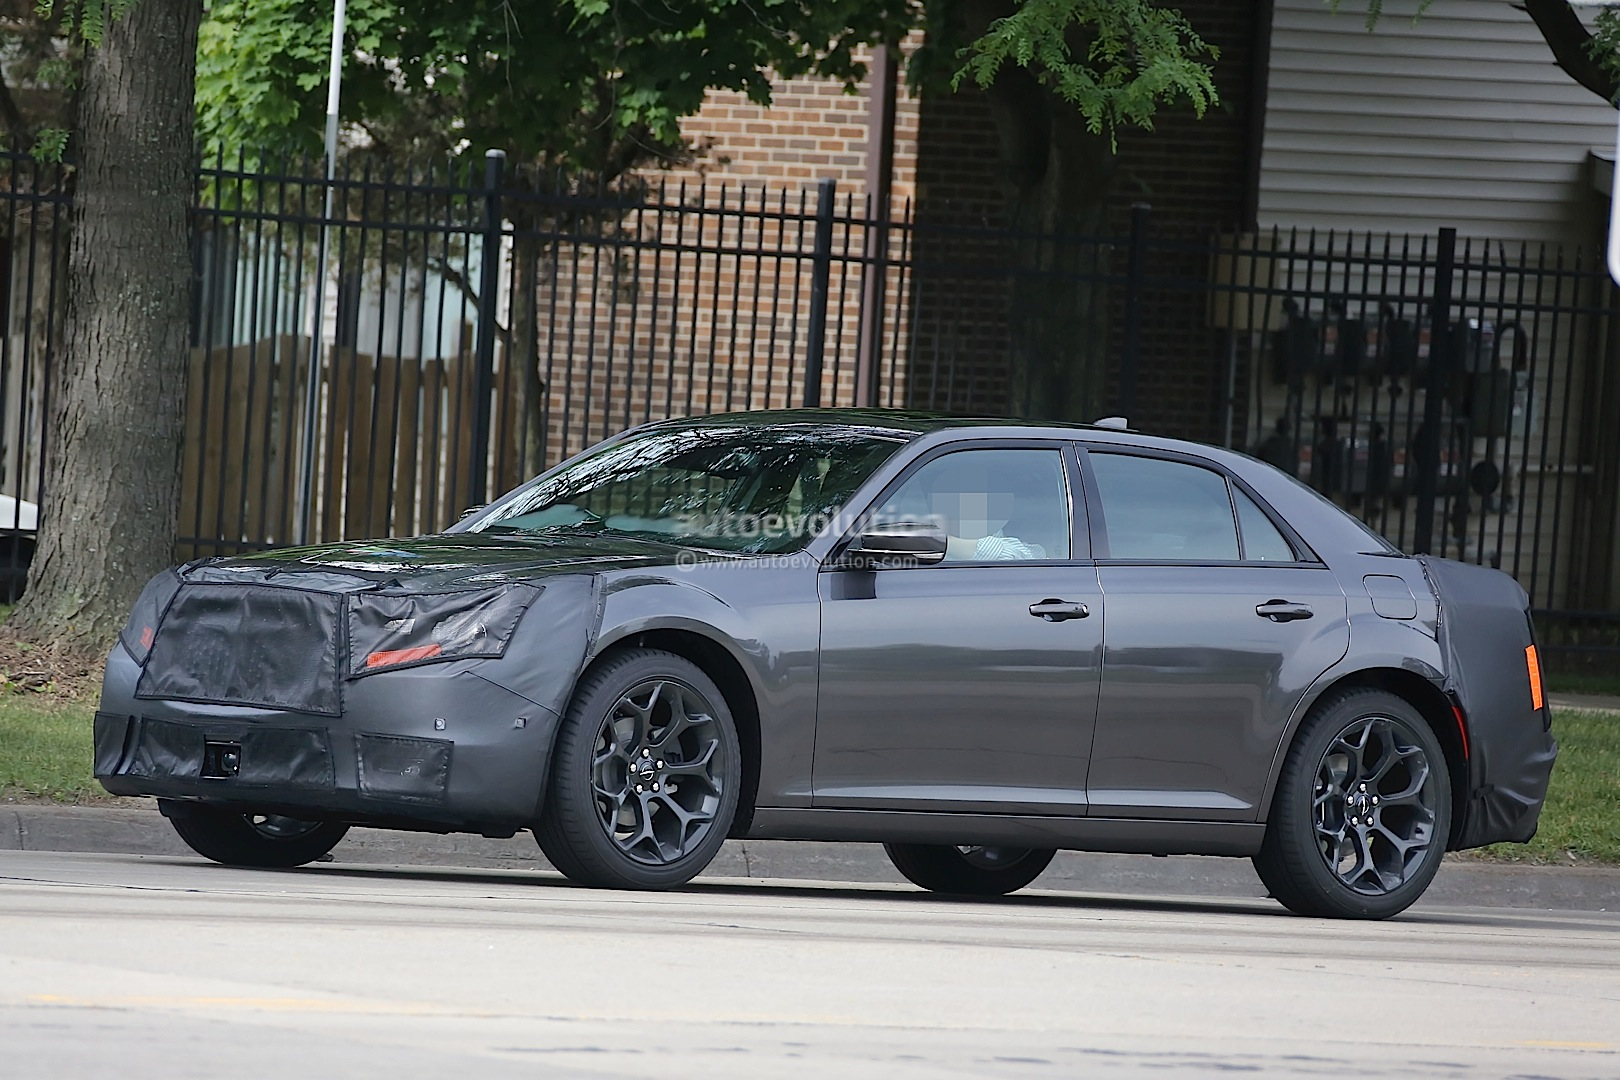 2015 chrysler 300 2015 chrysler 300 2015 chrysler 300